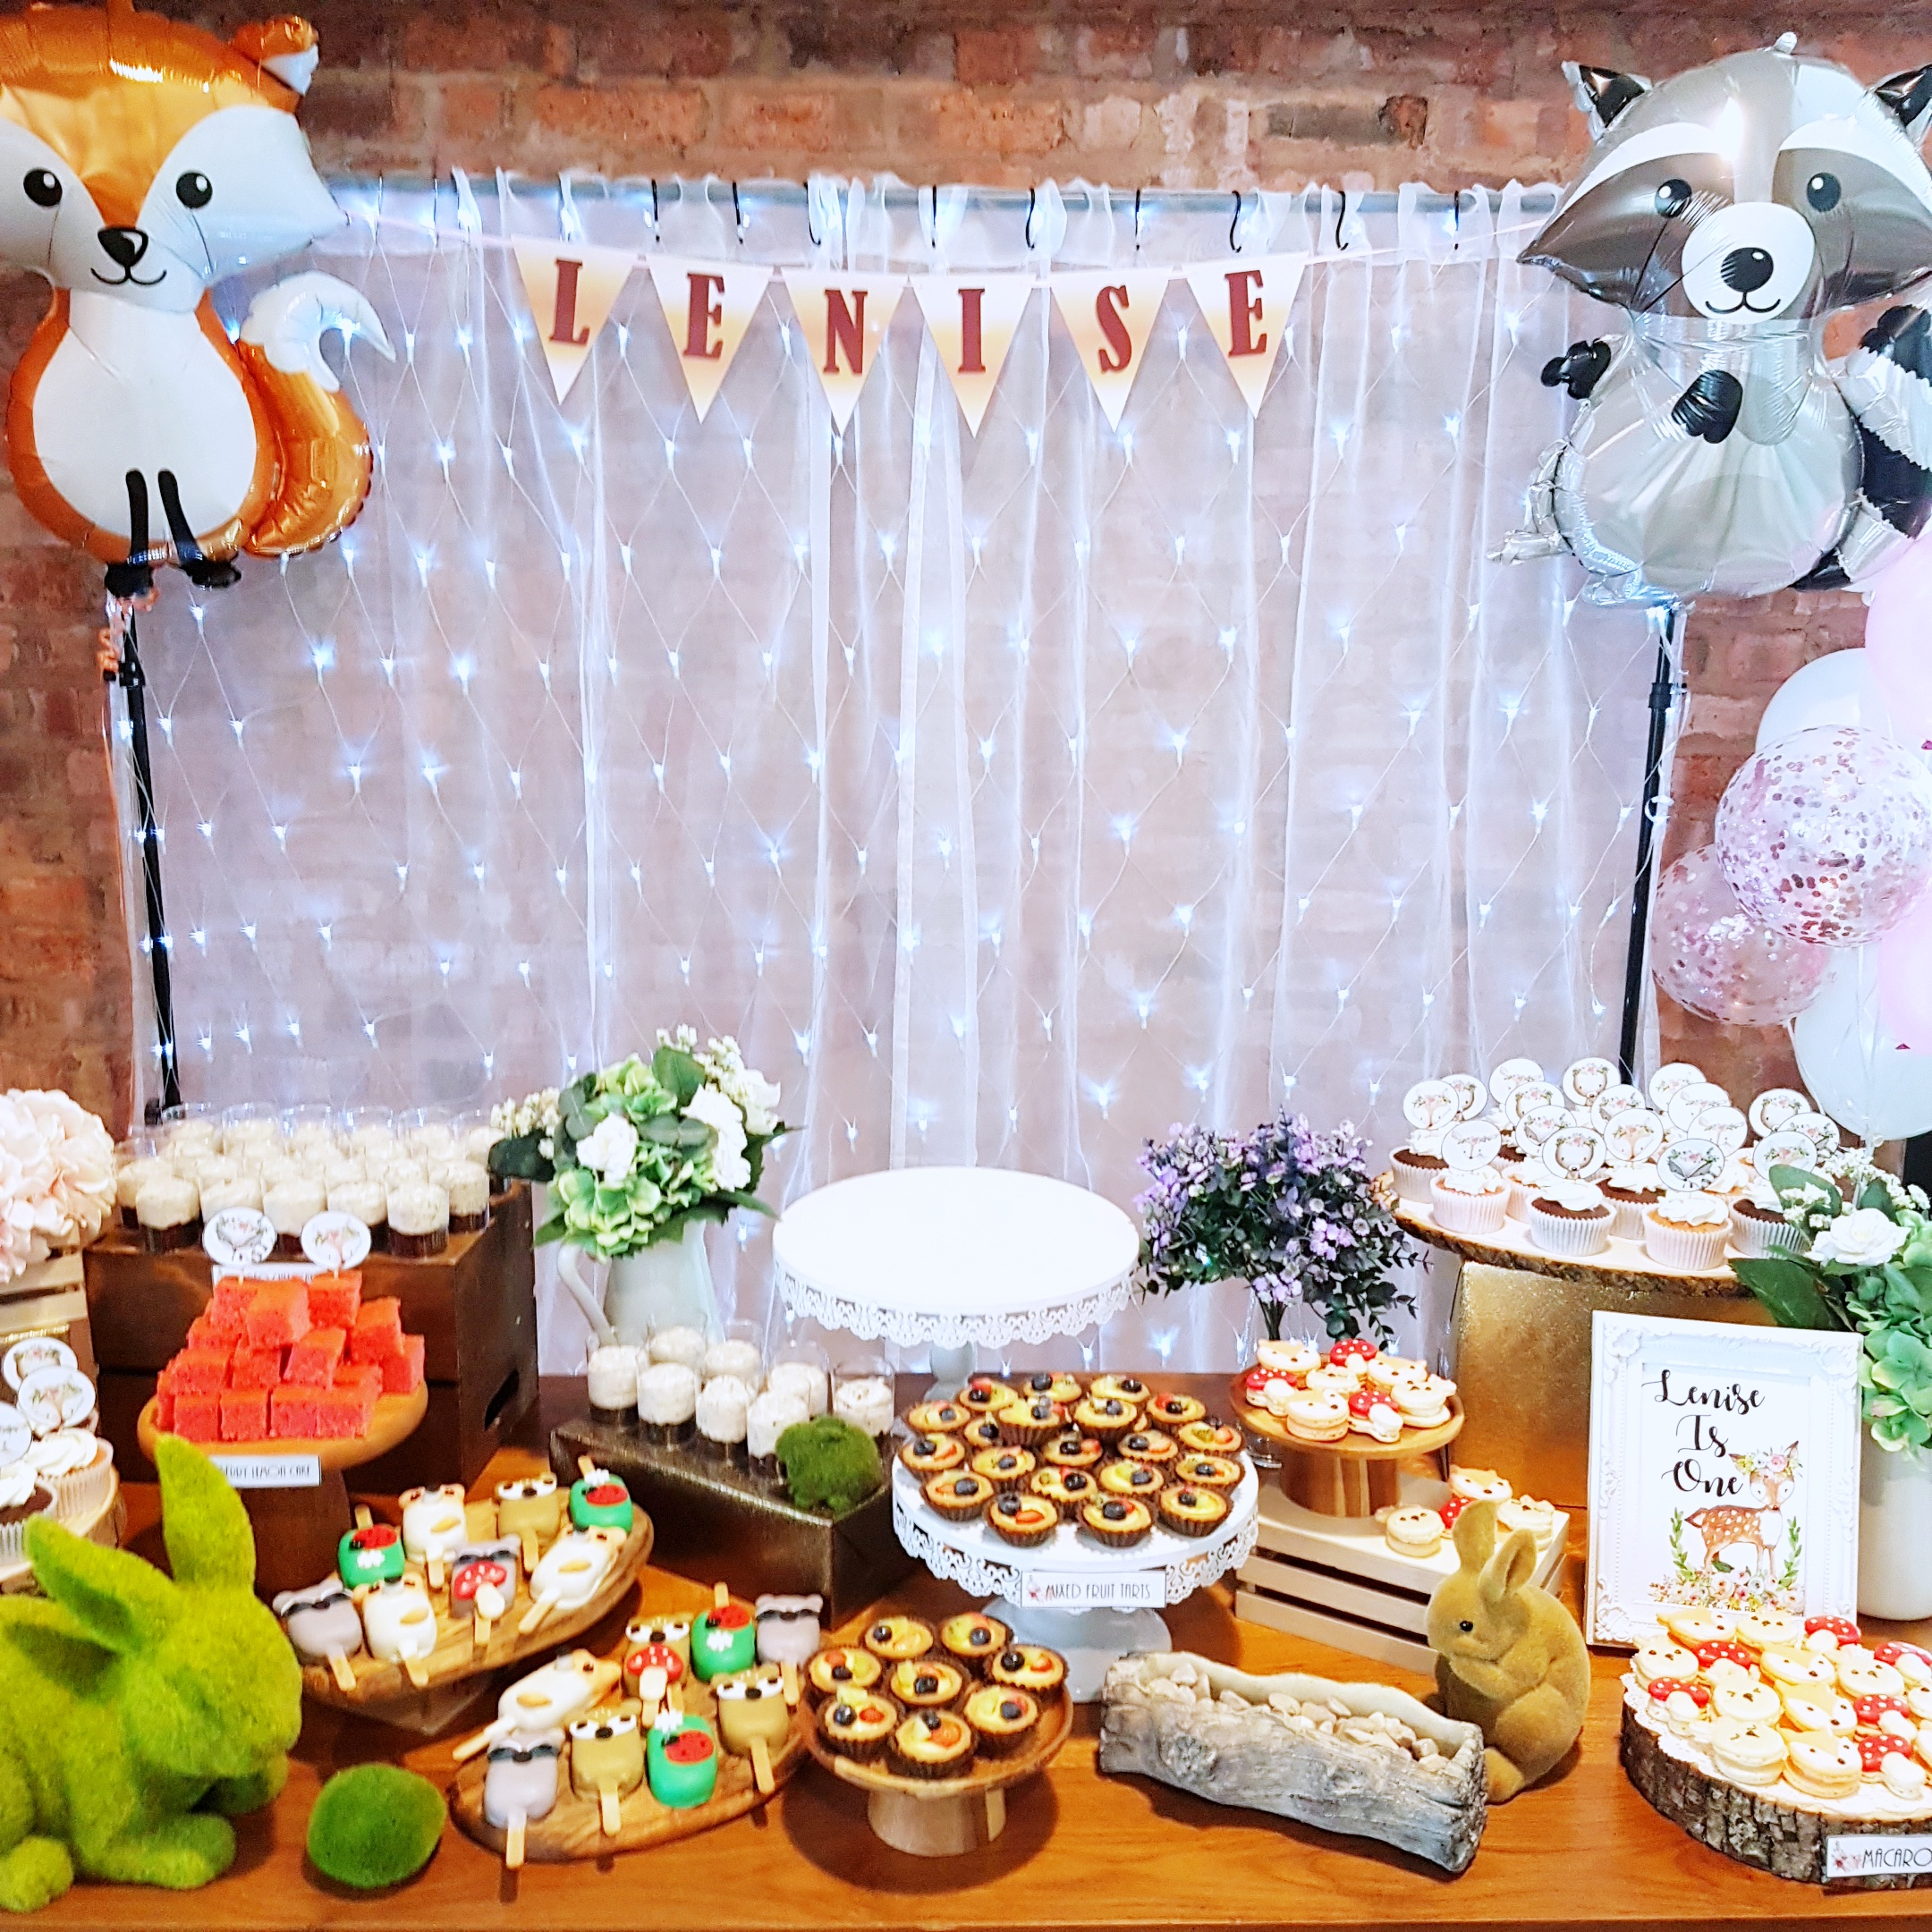 Rustic Woodlands Dessert Table by The Baking Experiment